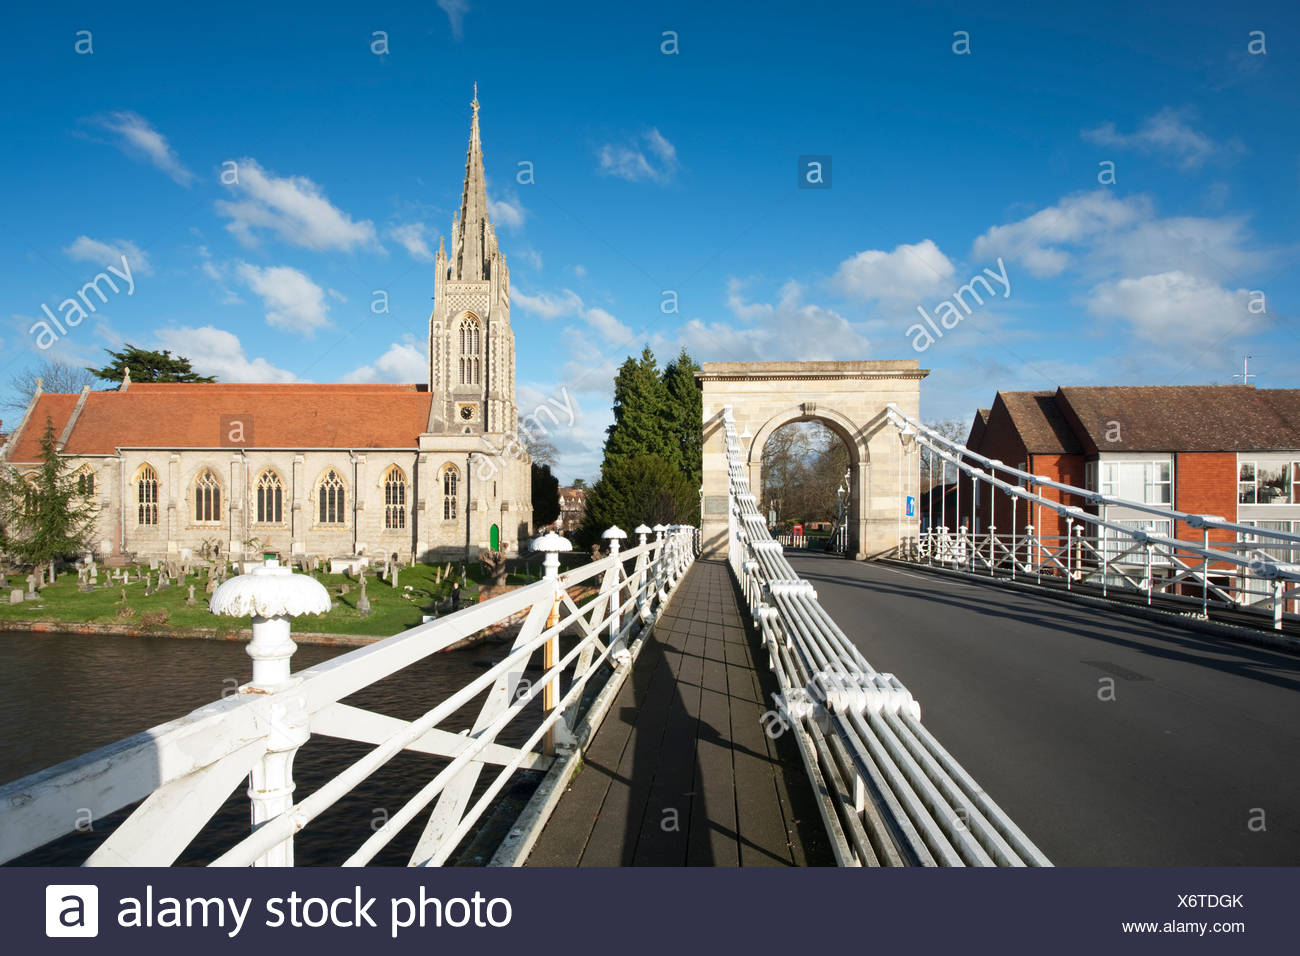 All Saints church and spire from Marlow road bridge, Buckinghamshire, Uk - Stock Image